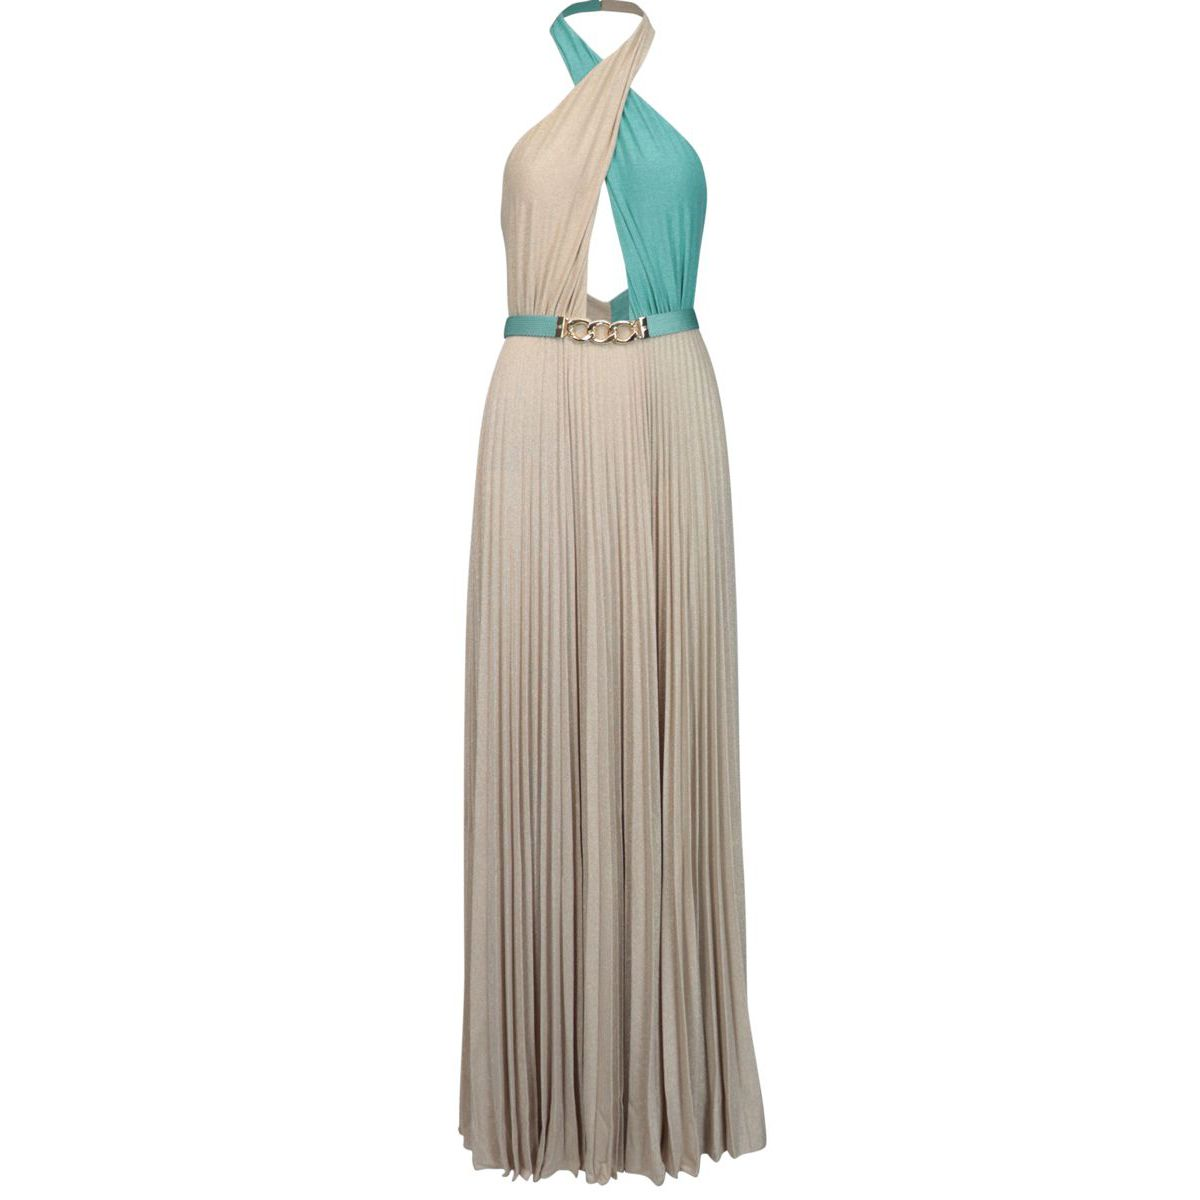 Long two-tone viscose blend dress with belt Gold / green Elisabetta Franchi